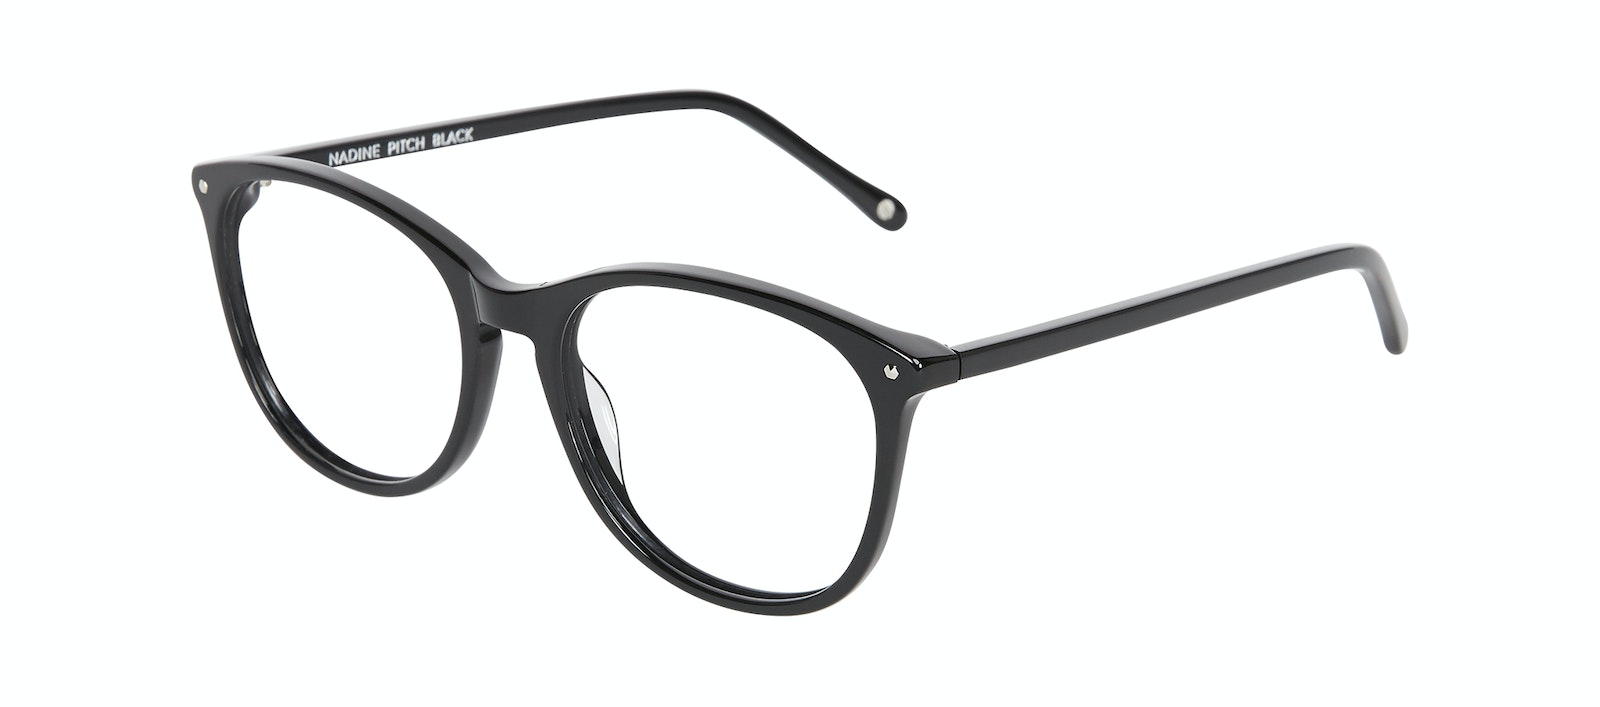 Affordable Fashion Glasses Rectangle Square Round Eyeglasses Women Nadine Pitch Black Tilt